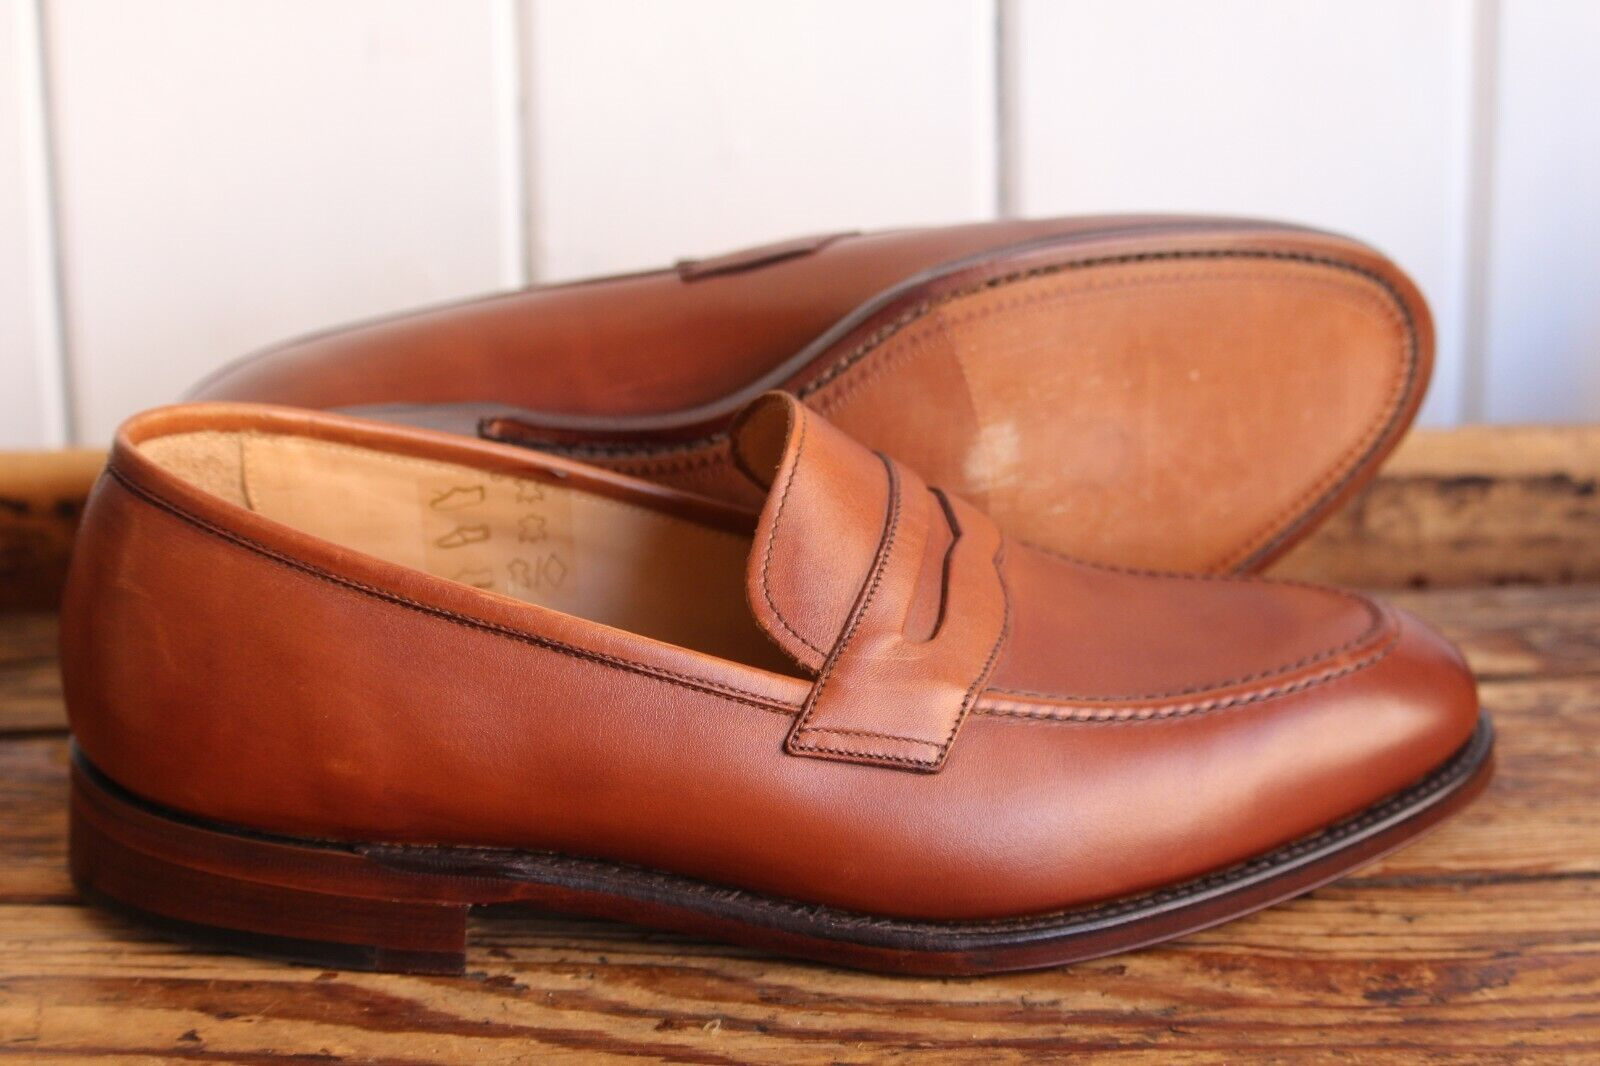 Loake Weißhall 8G in Mahogany - Seconds -   (L539)